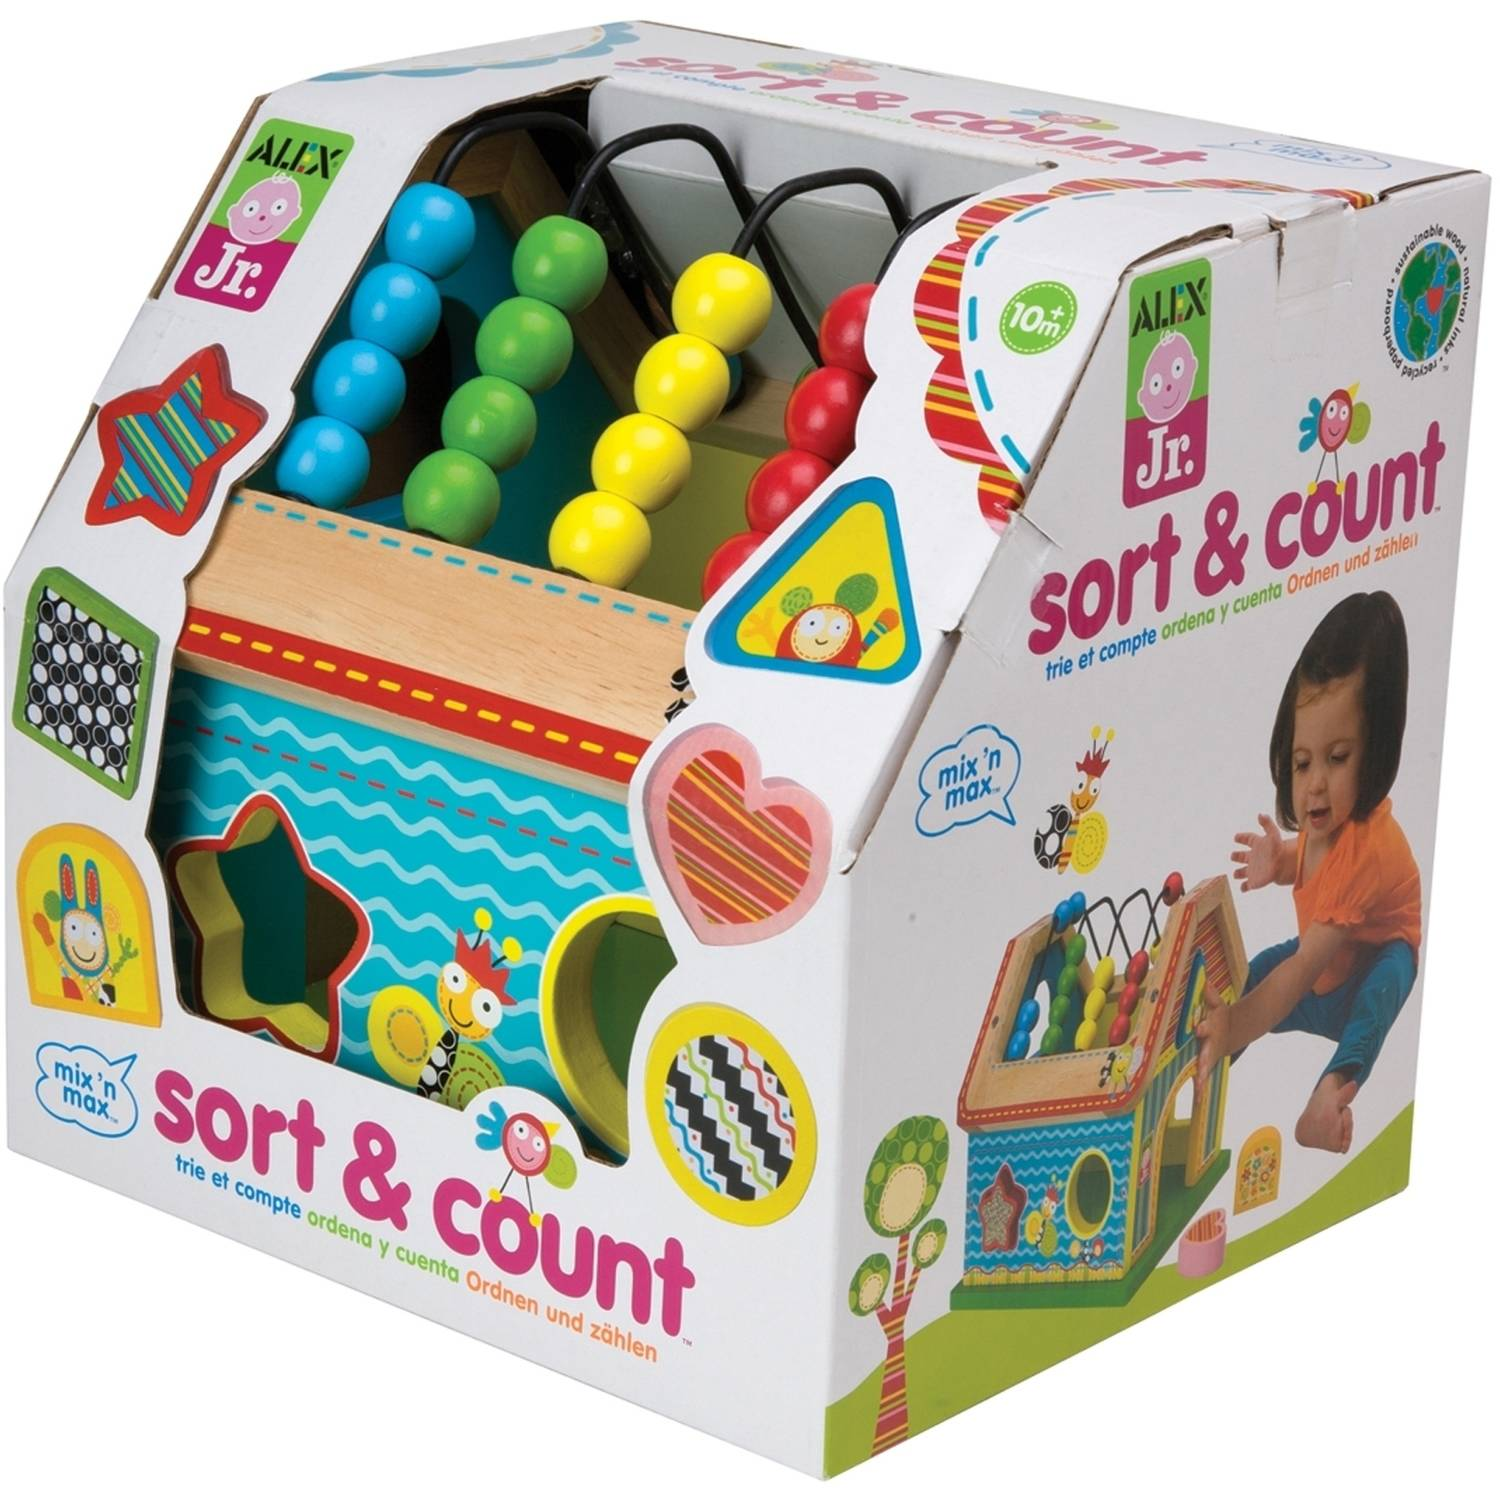 ALEX Toys ALEX Jr. Sort and Count Baby Wooden Developmental Toy